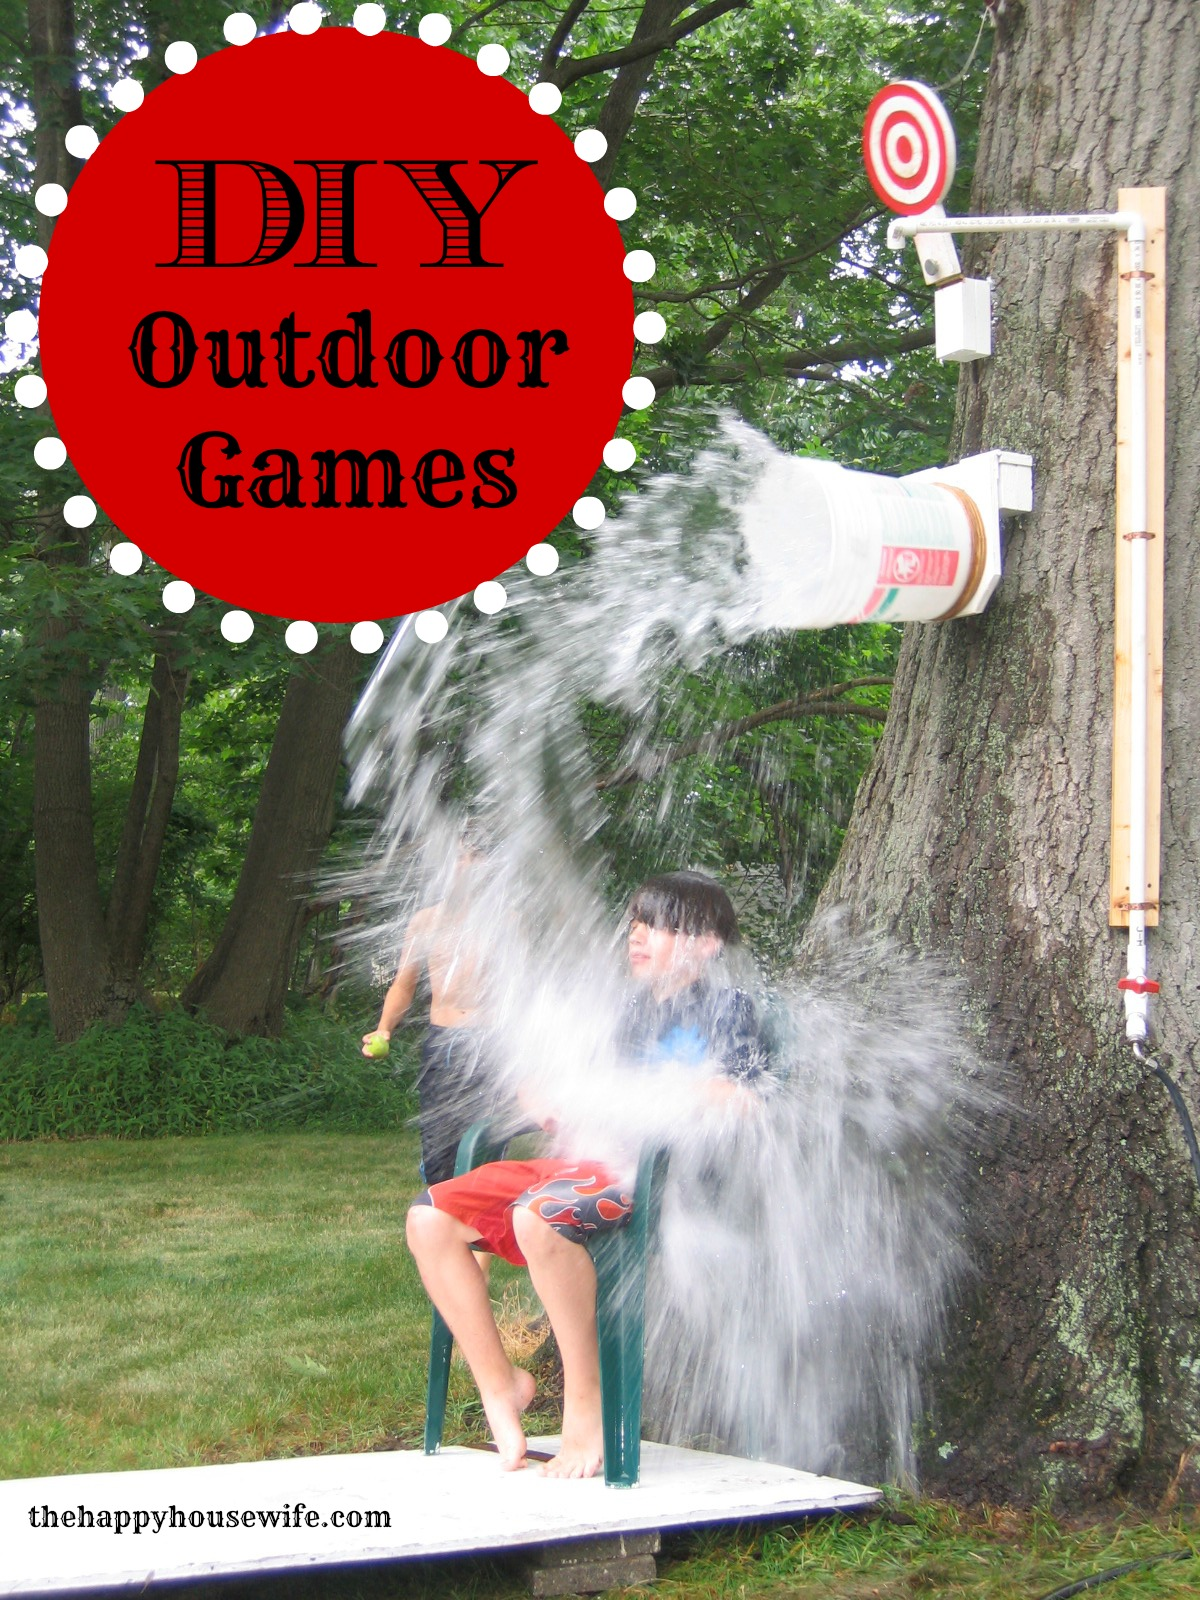 Diy Outdoor Games The Happy Housewife Home Management